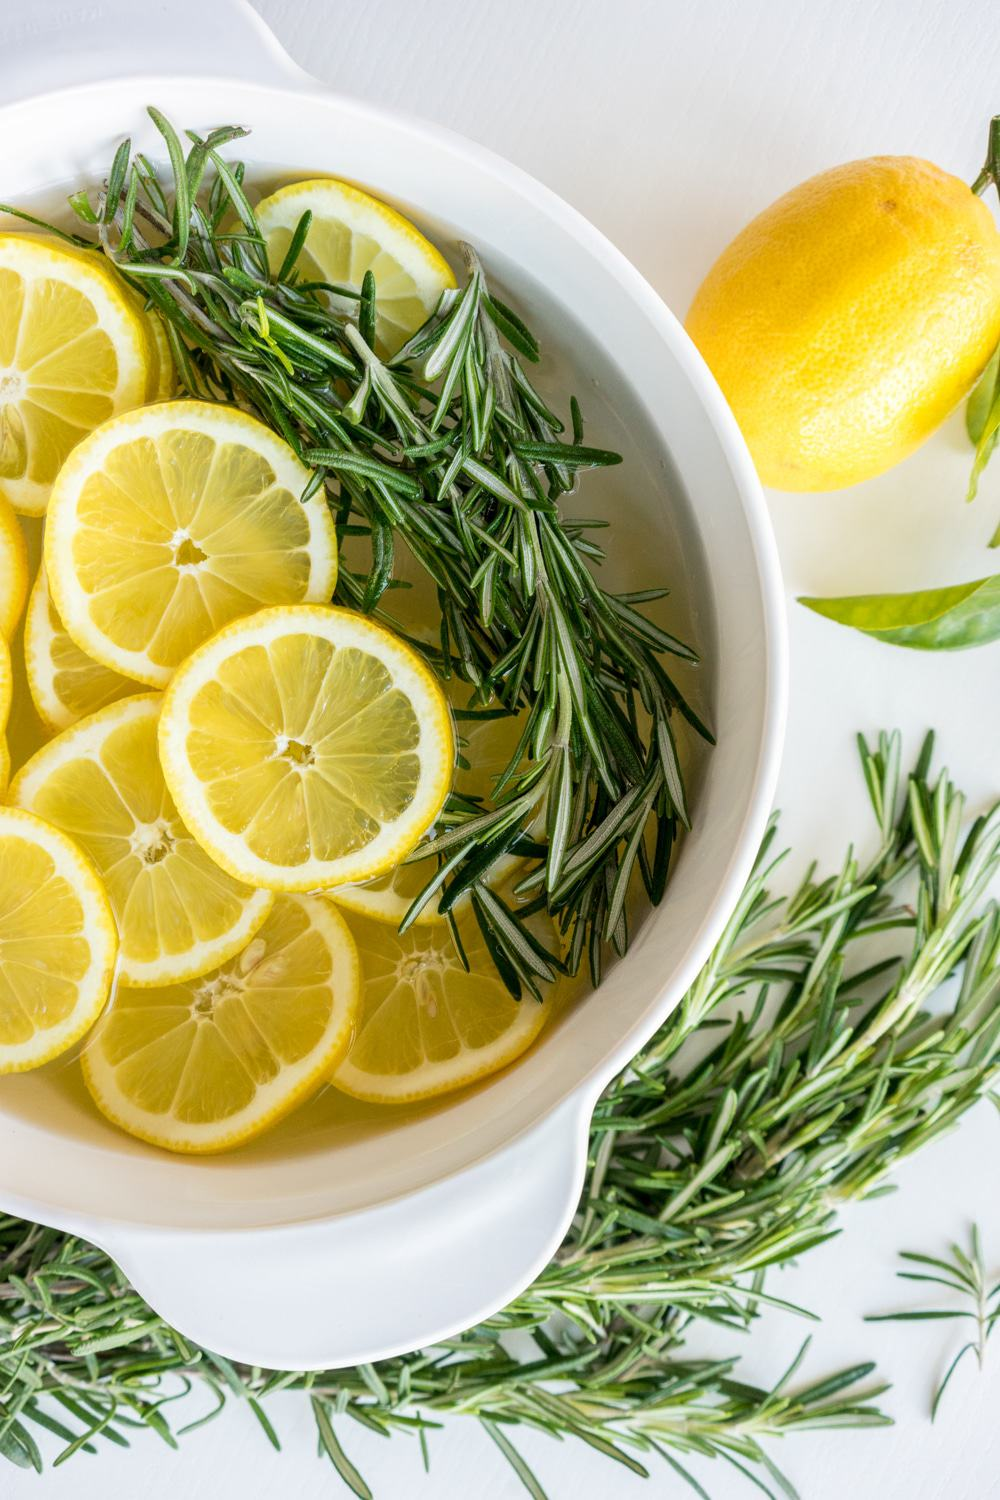 Lemon And Rosemary Stove Top Potpourri | These Stove Top Potpourri ideas create an amazing natural homemade scent that will bring the smell of spring into your home. Such easy recipes that you can leave on your stove all day long simmering. Each one will fill your home with a fresh aroma as you do your spring cleaning!